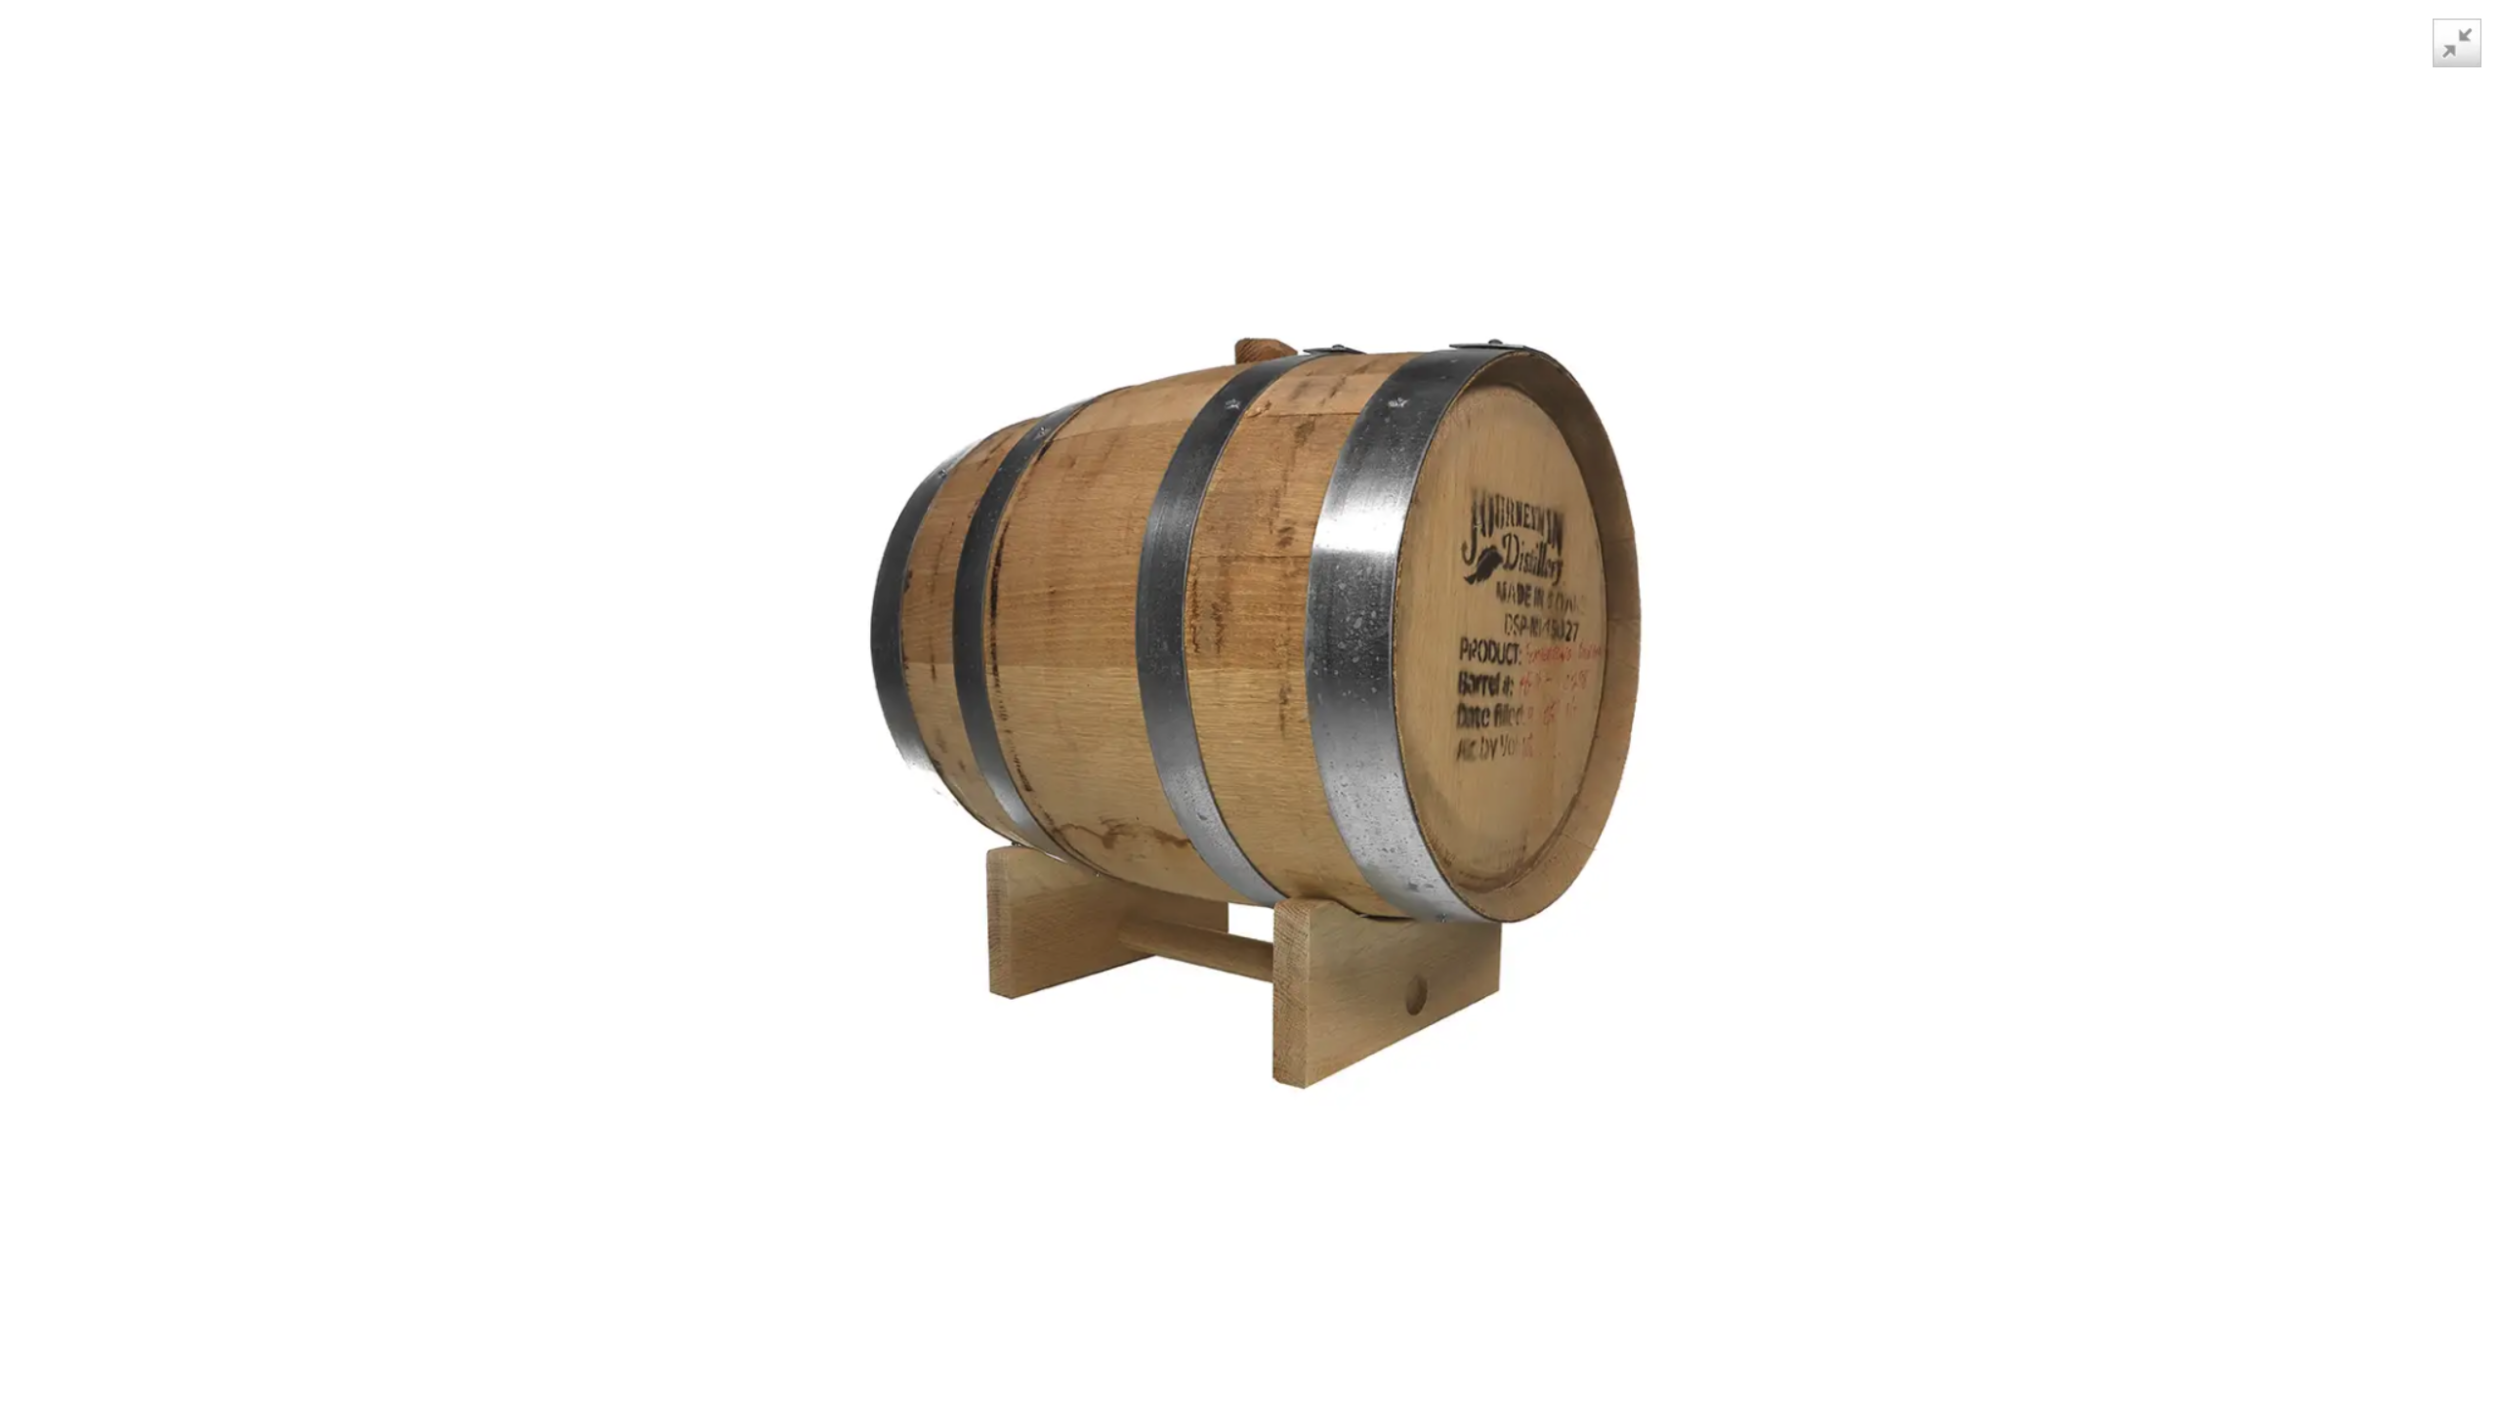 Antique Whiskey Barrel